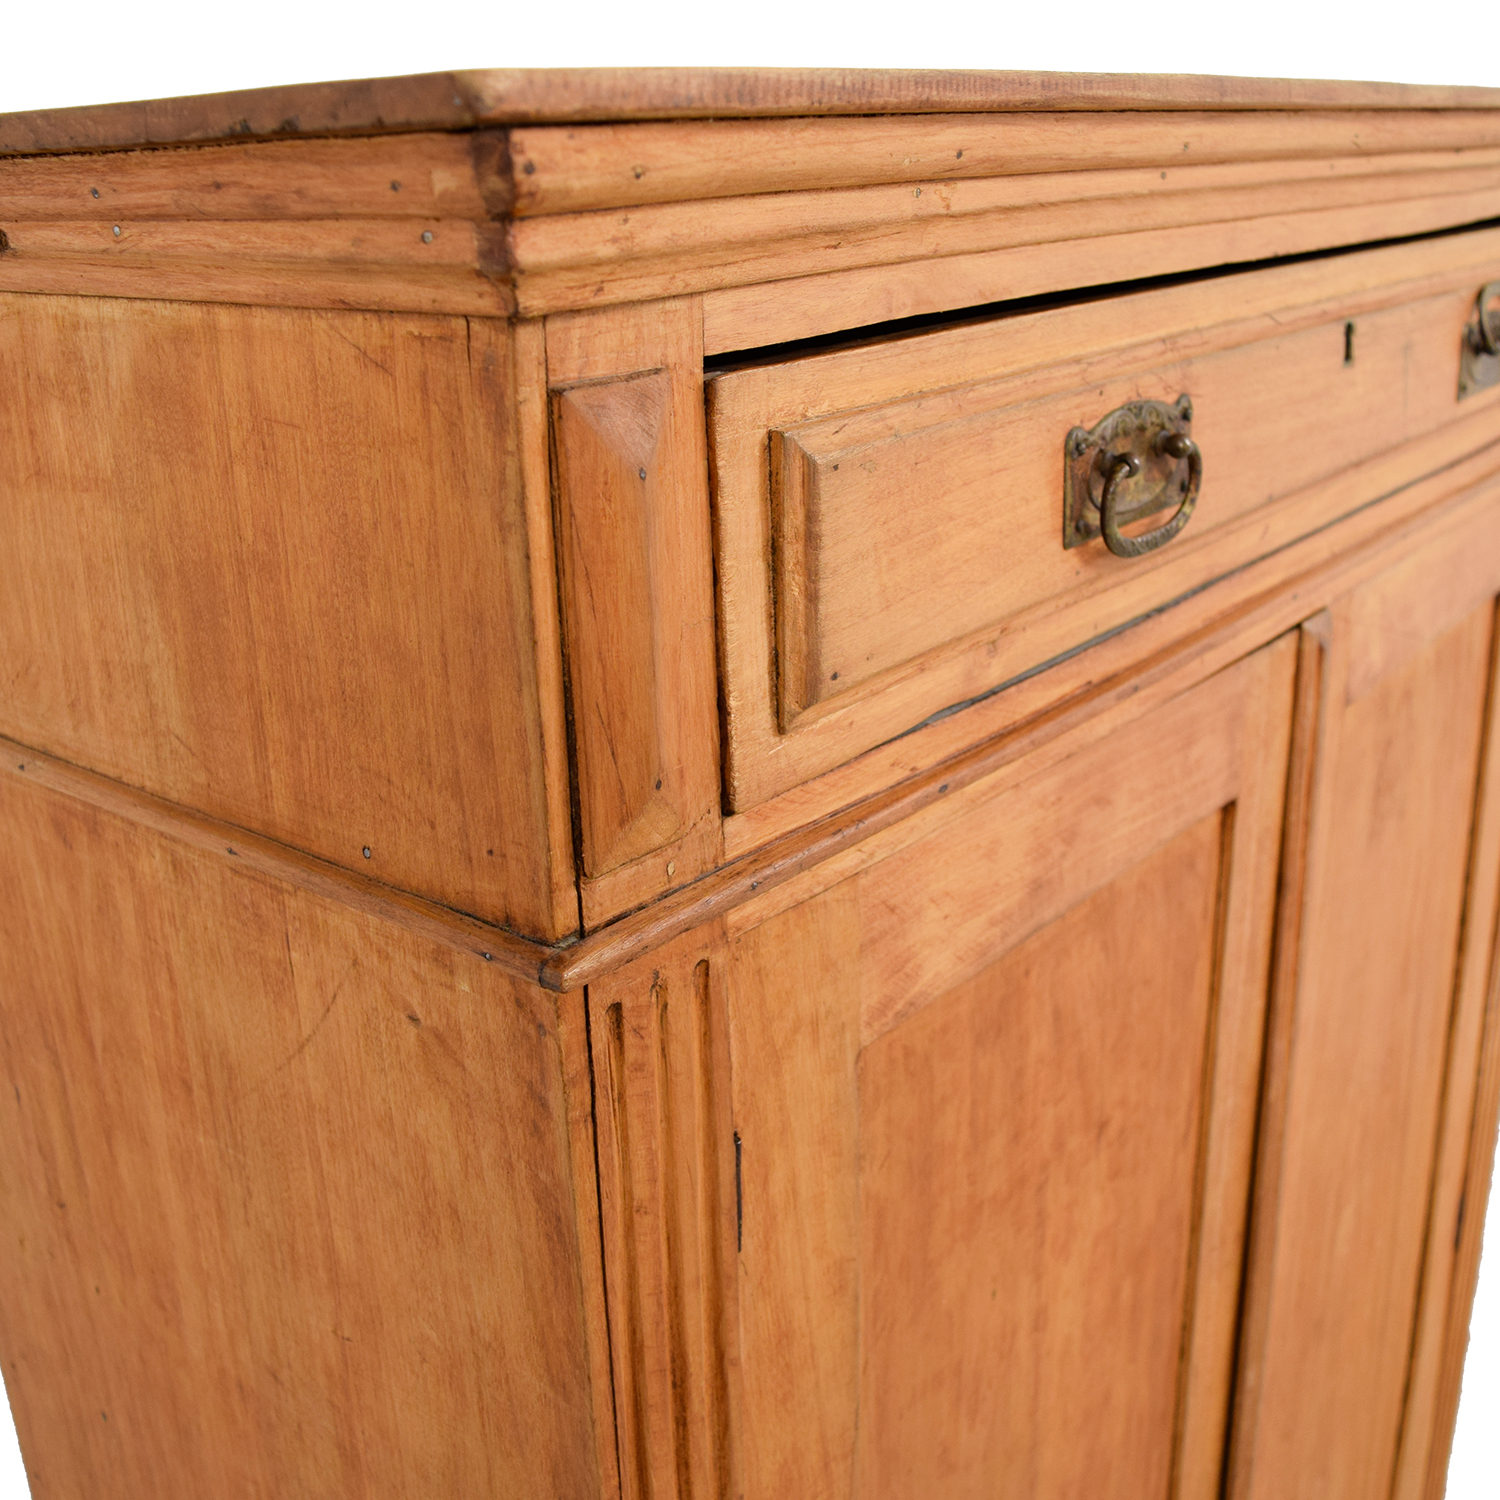 Antique Belgian Hutch Cabinet price